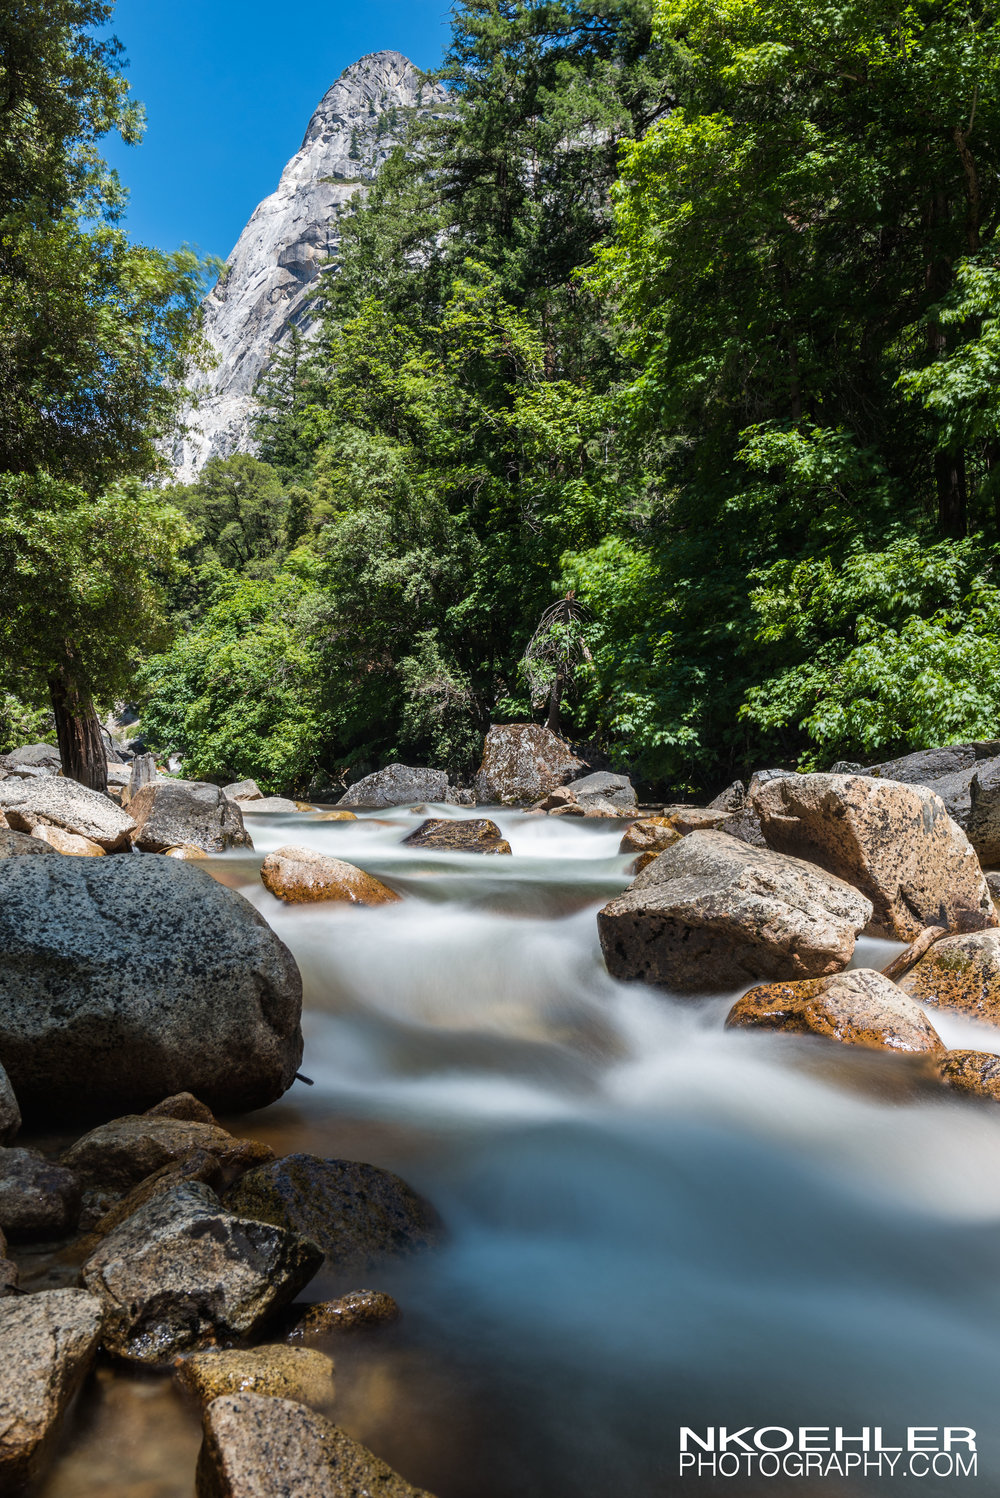 River running below in the Yosemite Valley.